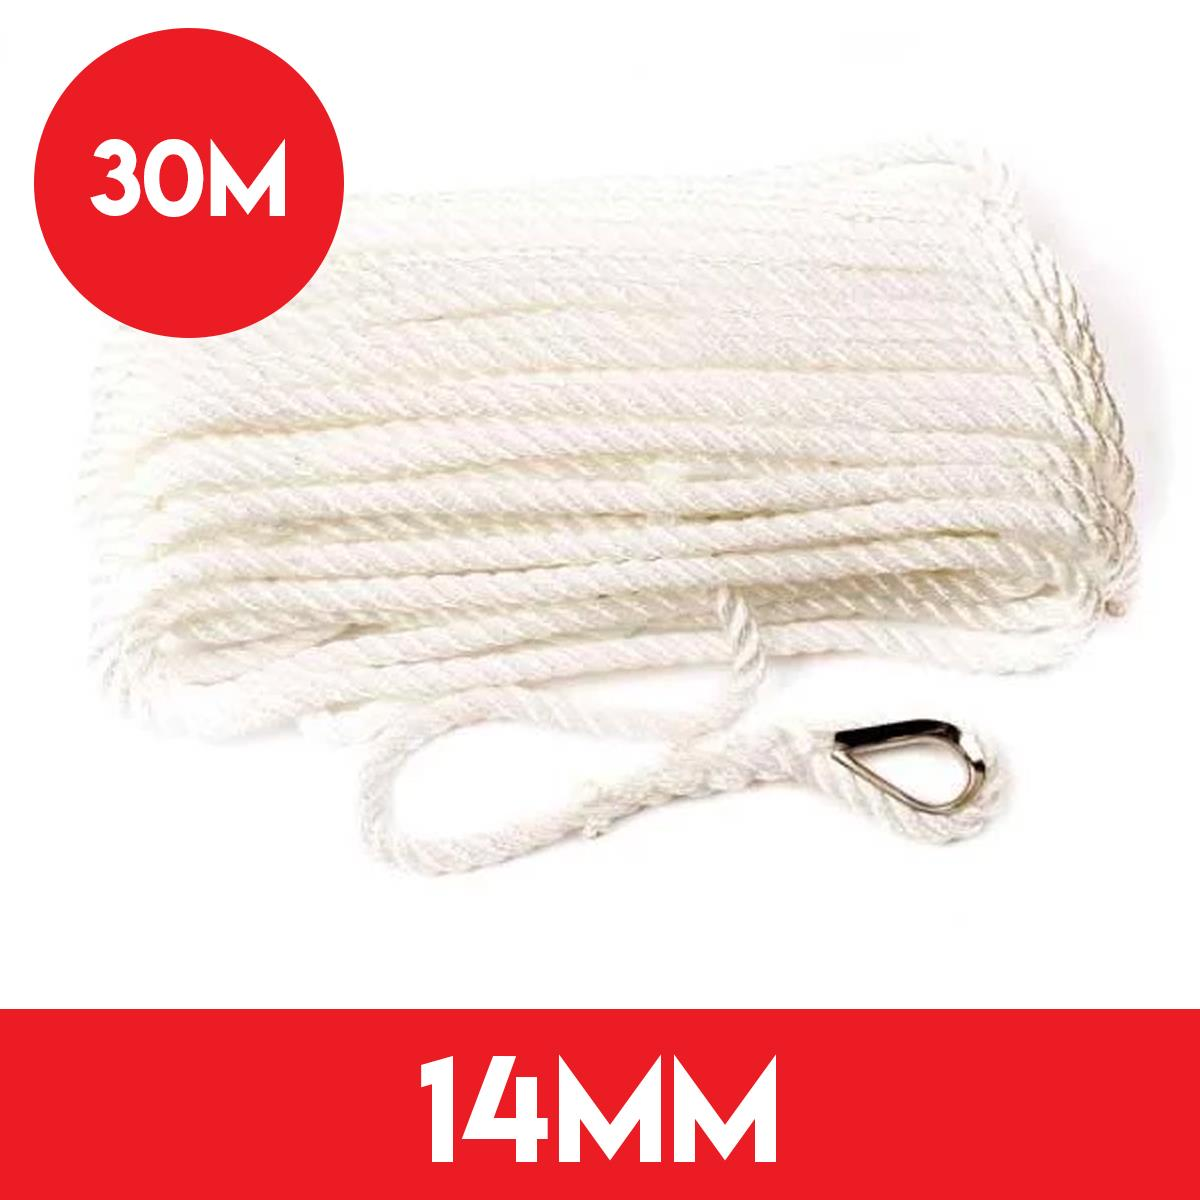 14mm Pre Spliced Anchor Line - 30 Meters